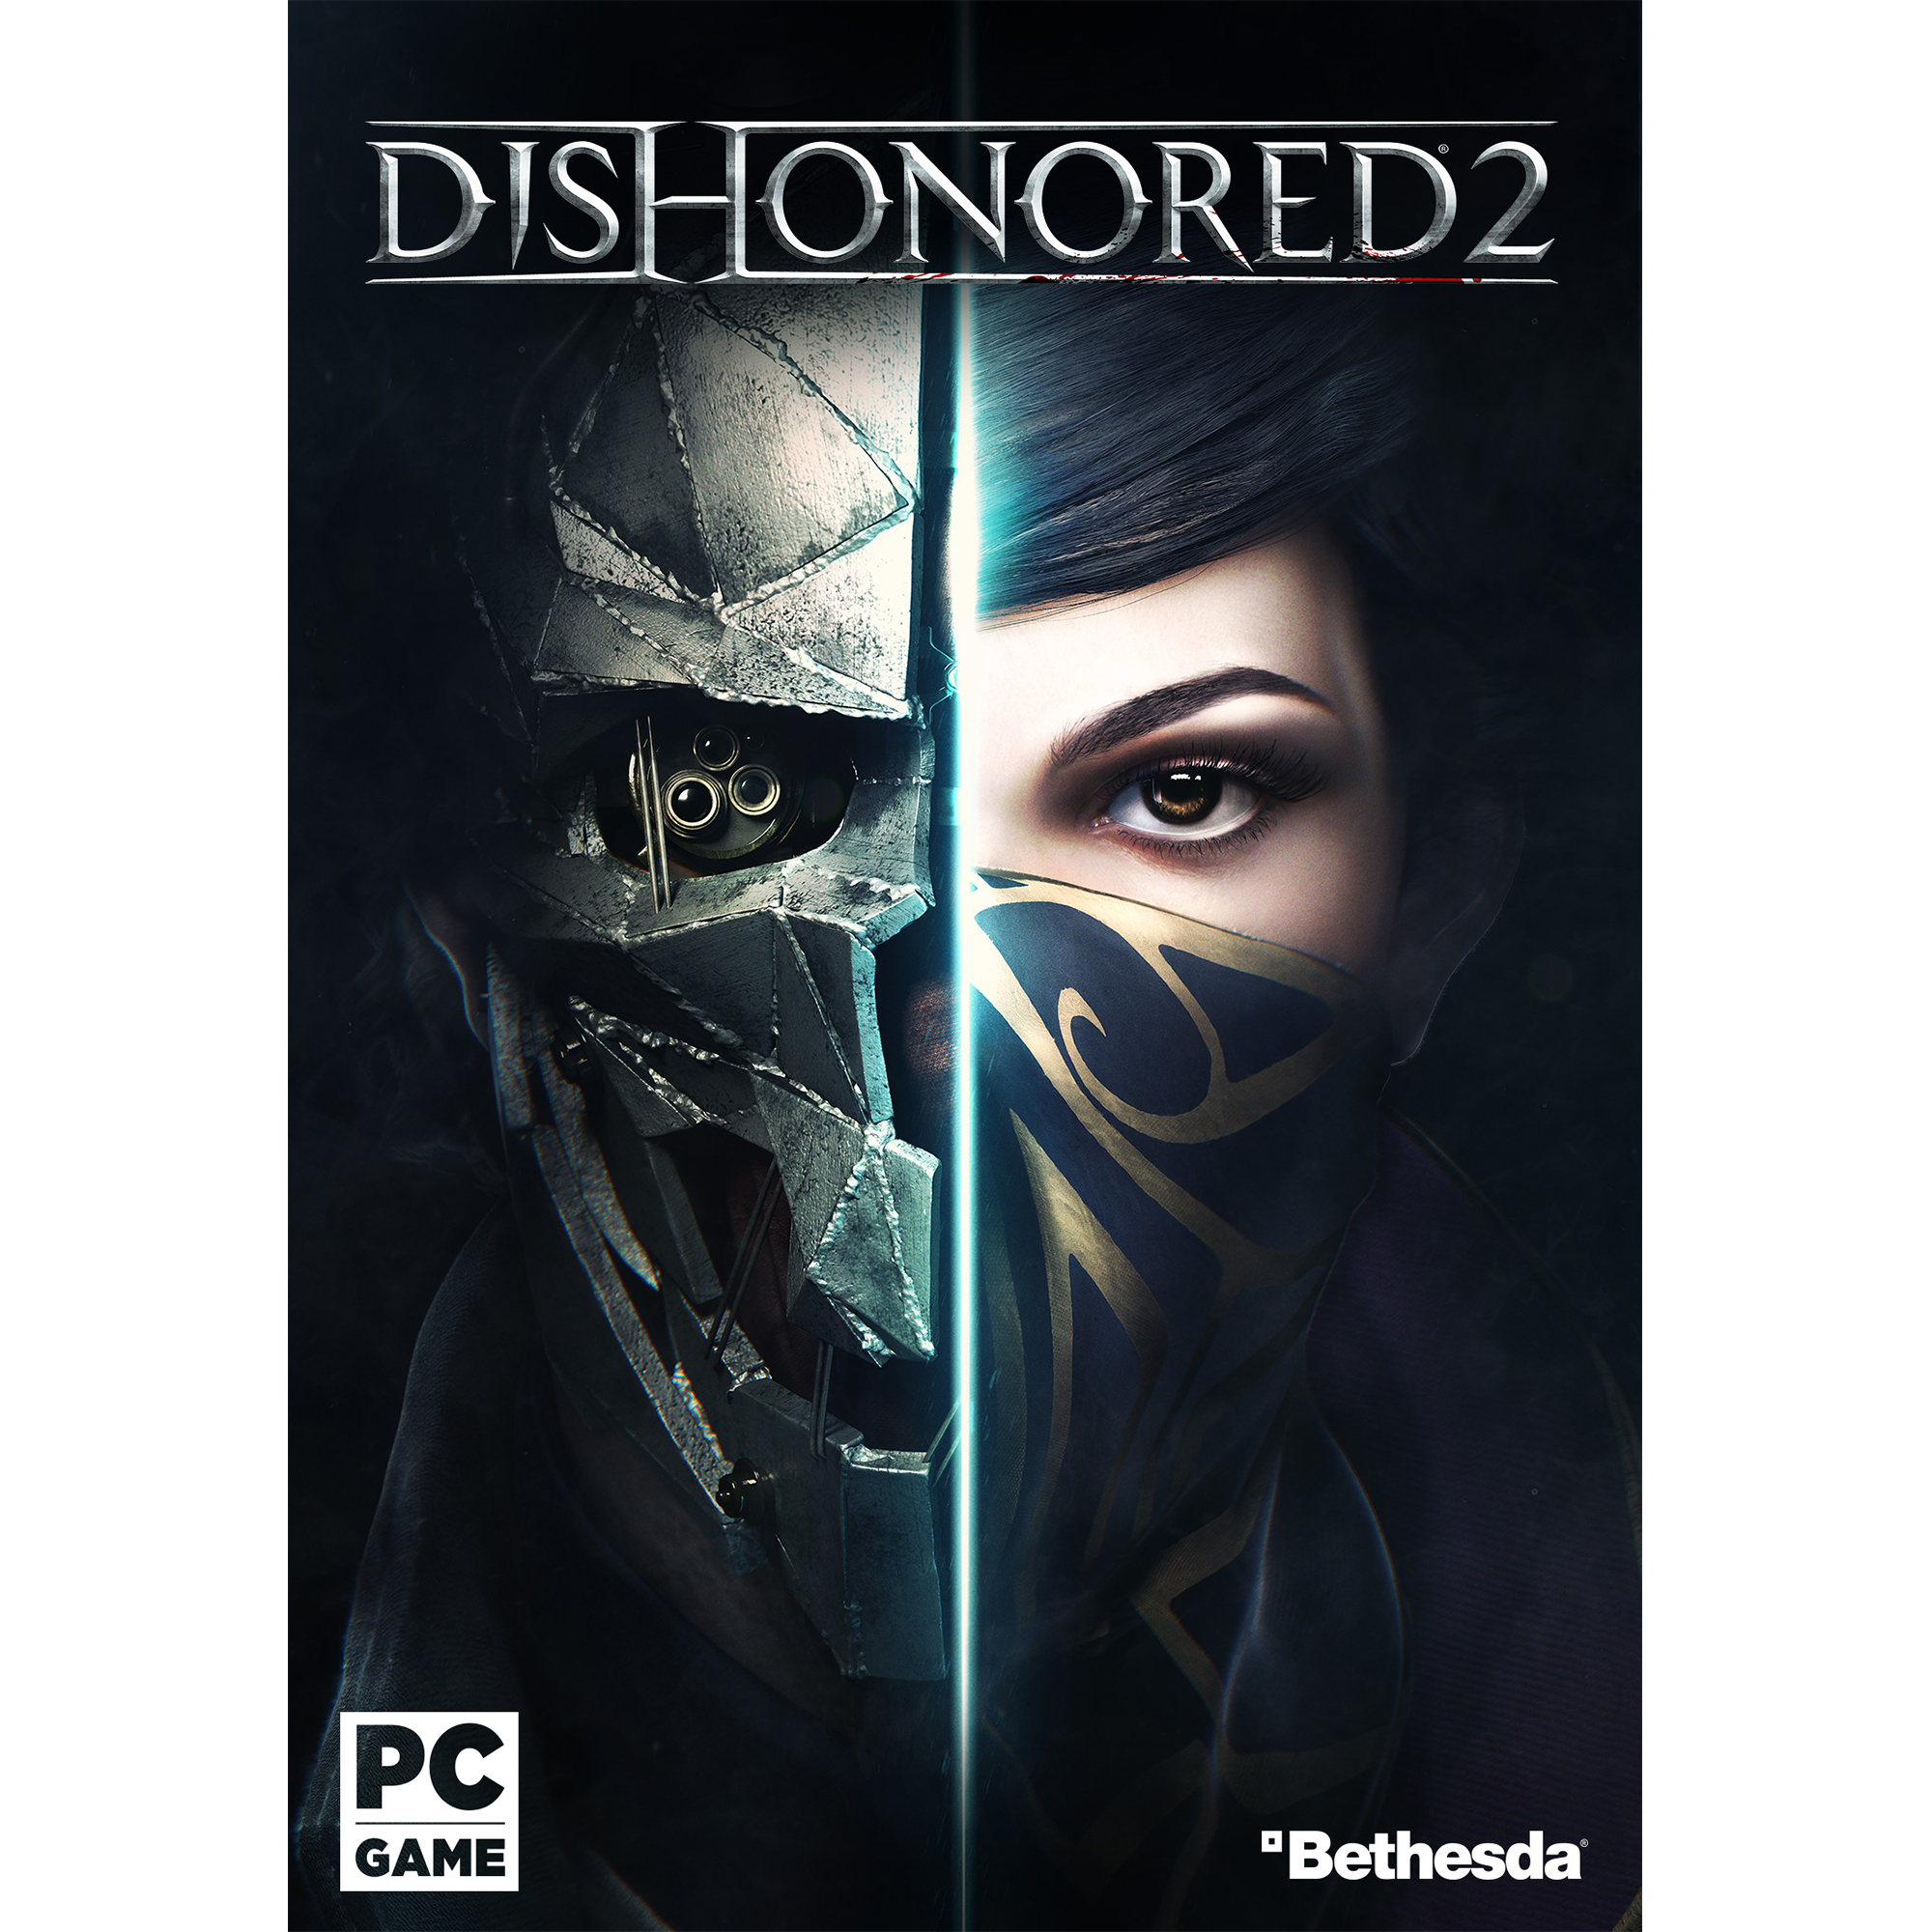 Dishonored 2 (PC) (Email Delivery)